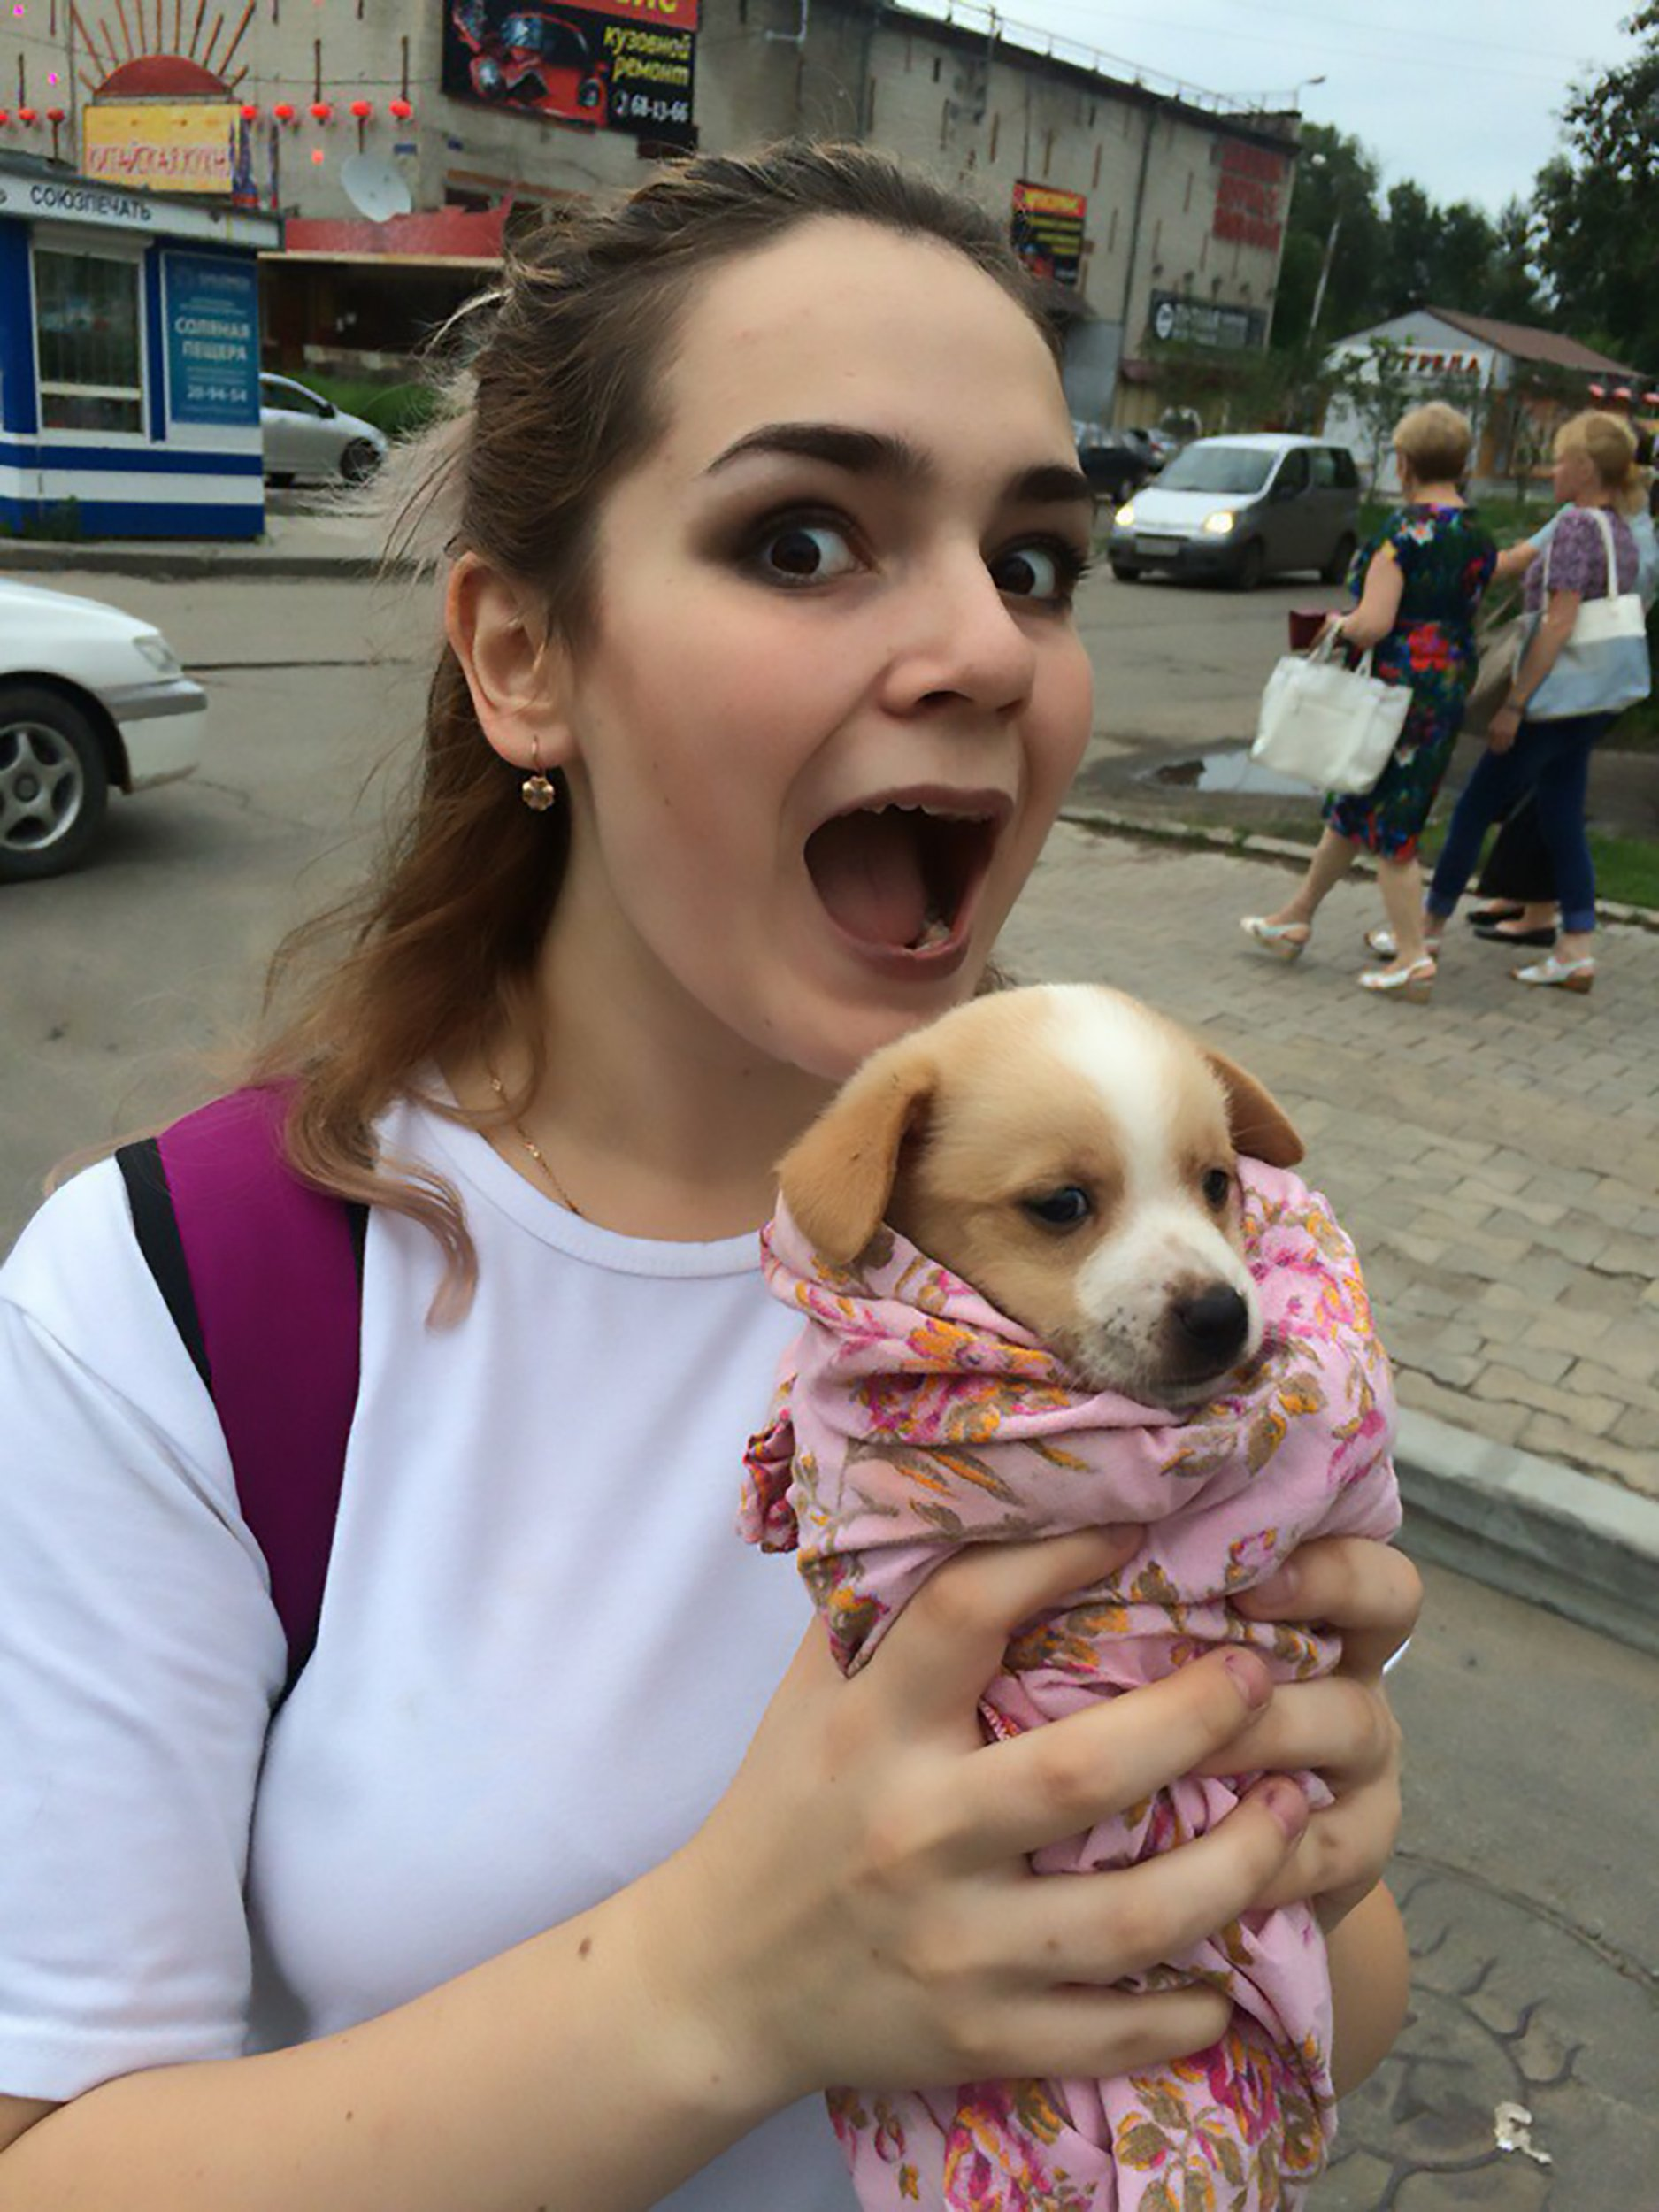 """Pic shows: Alina with a dog; A teenage girl has been arrested for torturing and killing cats and dogs with her friend and then posting the footage of their reign of terror online. Alina Orlova, 17, was arrested in the far eastern Russian city of Vladivostok where she was waiting for a connecting flight between her home city of Khabarovsk in south-eastern Russia to St Petersburg in the north-western part of the country. She and her friend, Kristina K., who likes to wear horror movie-style makeup and contact lenses, posted photographs and videos of themselves apparently torturing and killing cats and dogs for """"bloodlust"""". The horrific images show one dog nailed to a wall as if it had been crucified and another hanging by its collar and then shot with an air gun. Other animals are seen dead - including one which the girls cut open to pull out its internal organs. Police became involved after animal lovers reacted with outrage to the graphic images that were posed on social media. Local residents started a petition calling on the authorities to do something about the teenage torturers. Both of the callous girls are students and live in the city of Khabarovsk in south-eastern Russiaís Khabarovsk Krai region. They said they had been adopting unwanted animals which they had promised to look after but instead they had tortured and killed them, posting photographic evidence online. Orlova is seen clutching a cute puppy with her mouth open wide as if she is about to bite it, and another image shows Kristina menacingly holding a hammer and a nail. Netizen ëDmitriy Dmitrieví said: """"Somebody should do the same to them, in the same manner they treat these animals."""" And ëMaria Ivanoví added: """"OMG, I feel so bad after seeing it. One of the dogs that is still alive looks so adorable on the photo and is already hanging dead on the other one. """"How can their mothers defend it. I would have probably reported on my child if he did something like that. Horrible."""" Orlova also posted that s"""